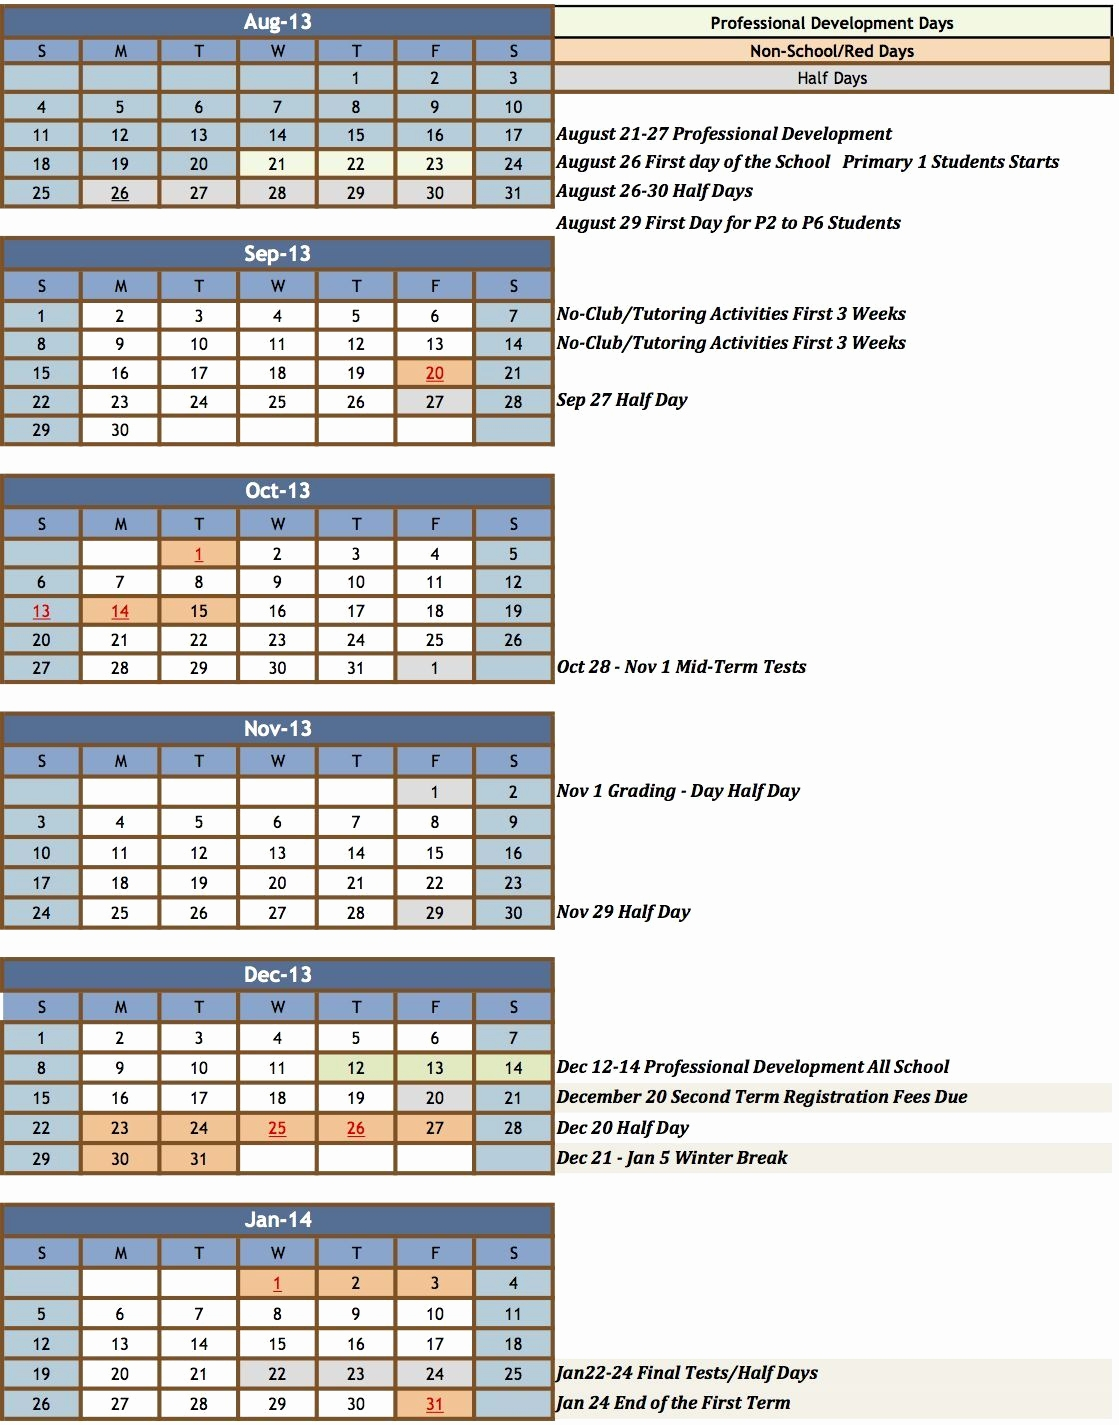 Uiuc Calendar 2022.C A L E N D A R U I U C Zonealarm Results